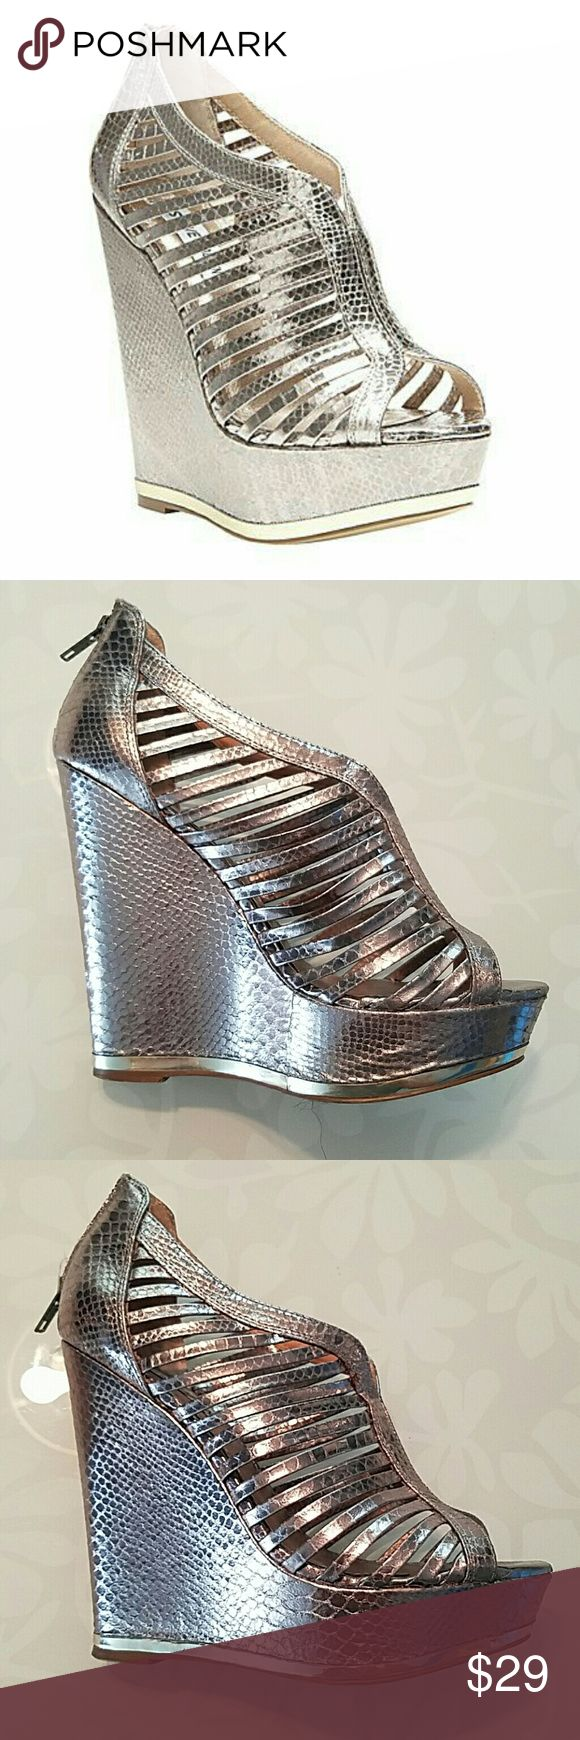 Steve Madden wresse silver cage bootie wedge 8 Beautiful Steve Madden caged wedges, better than new Sky High extremely comfortable, fast shipping - store closing soon - great color matches everything! Steve Madden Shoes